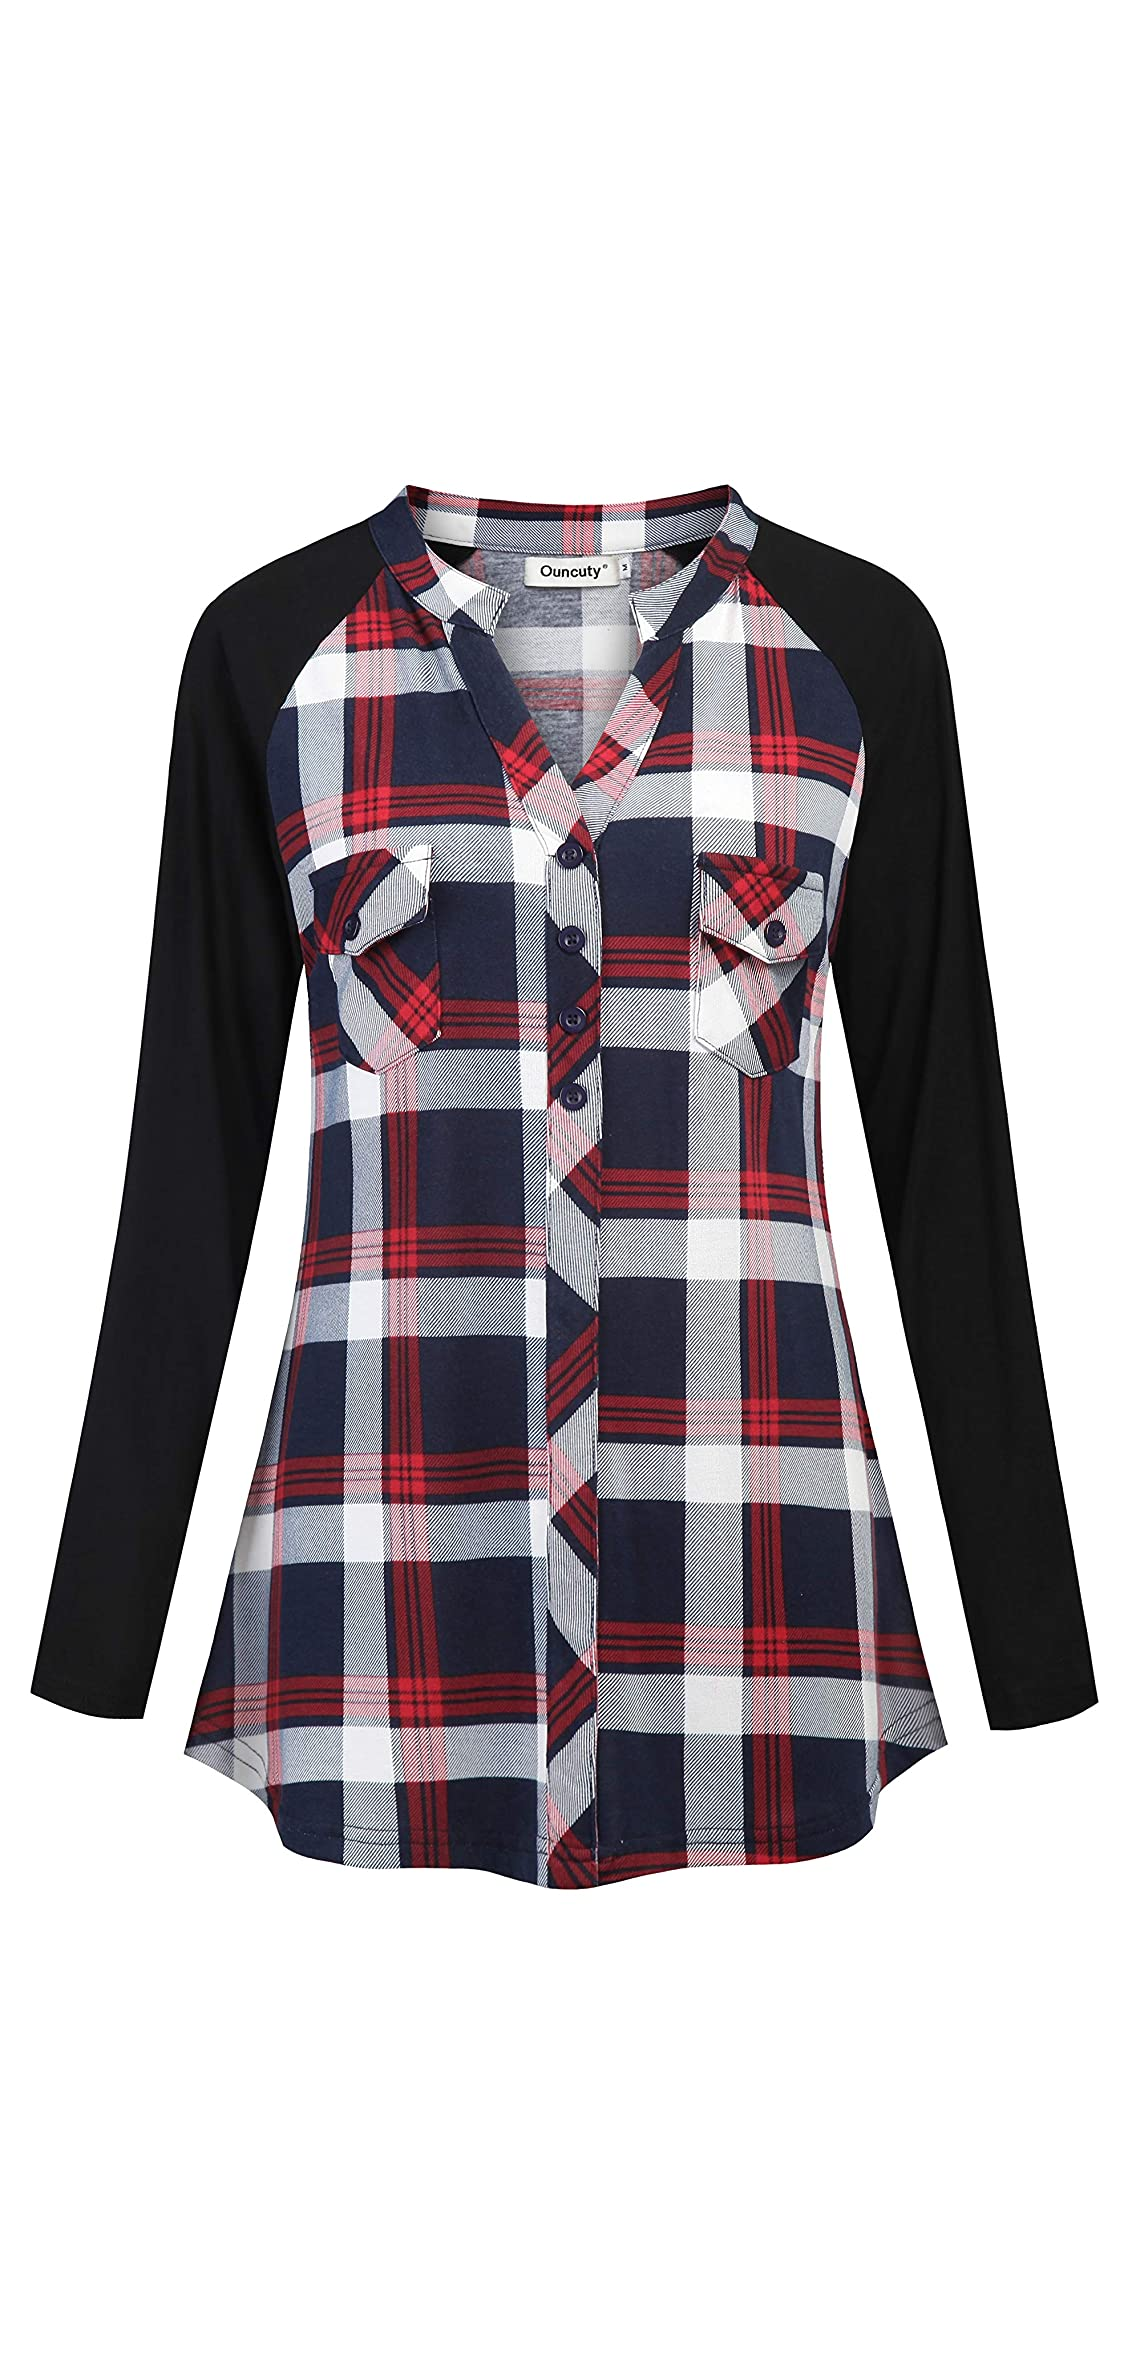 Womens Plaid Flannel Shirts Long Sleeve V Neck Casual